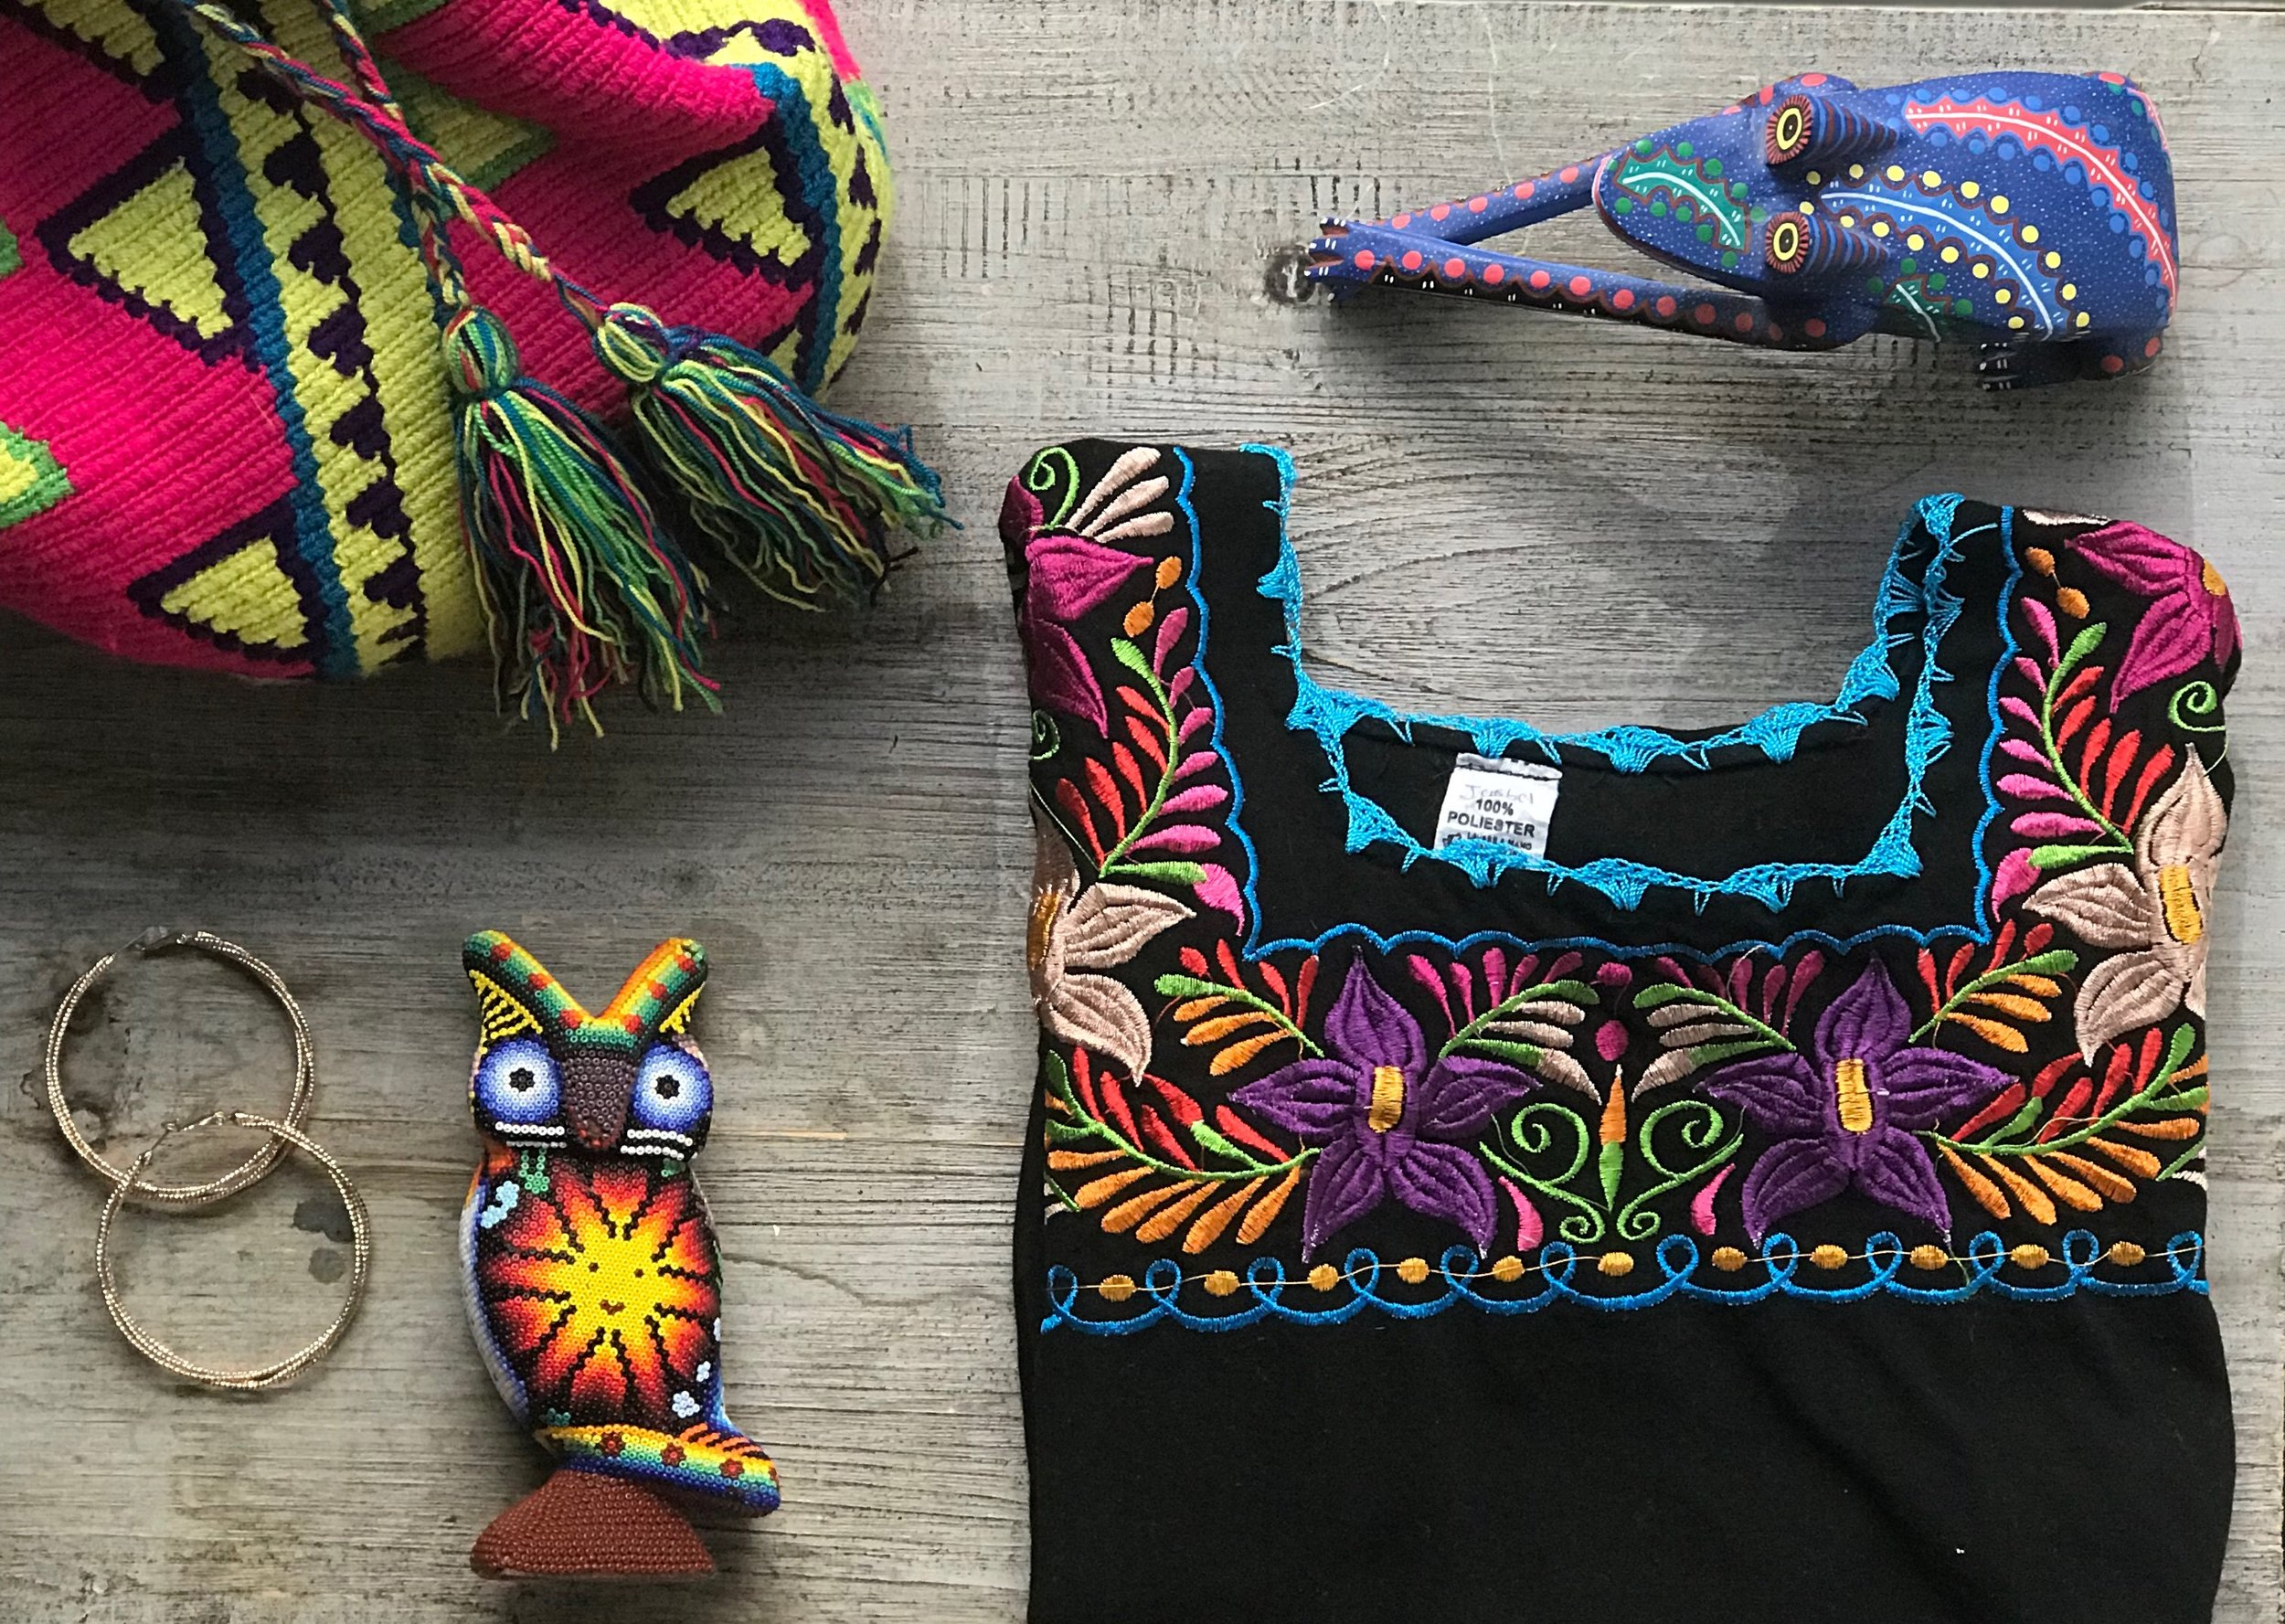 A purse made by the Indegeounous people of Northern Colombia, a Mexican hupil, large gold earrings. I consider this my resistance starter pack